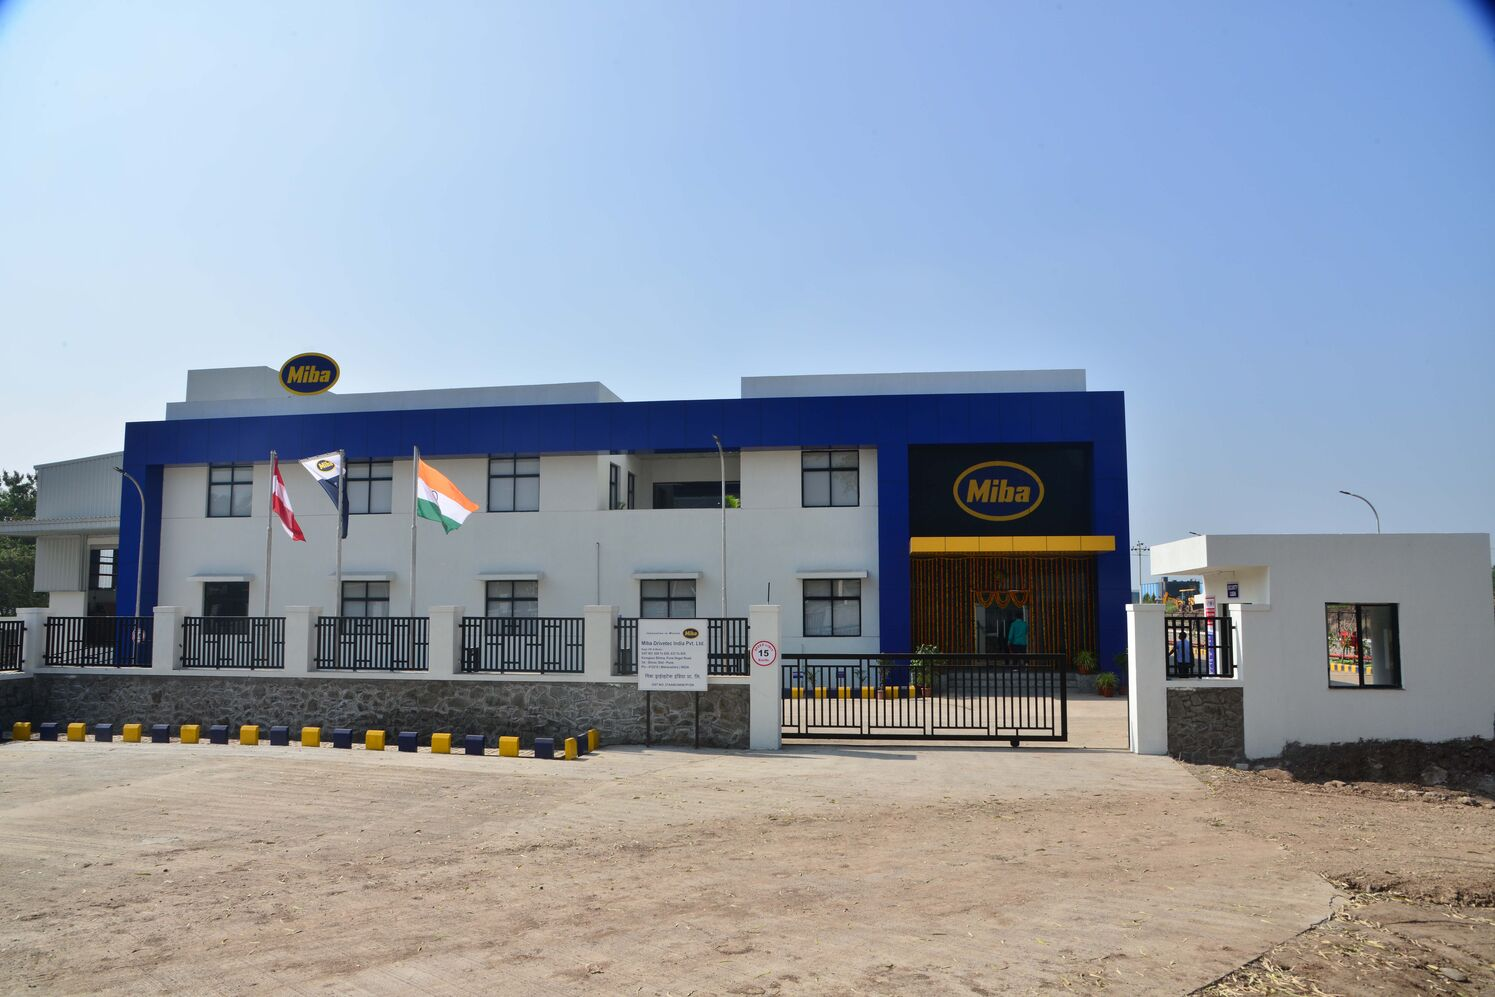 Front View of the Miba Drivetec India Location